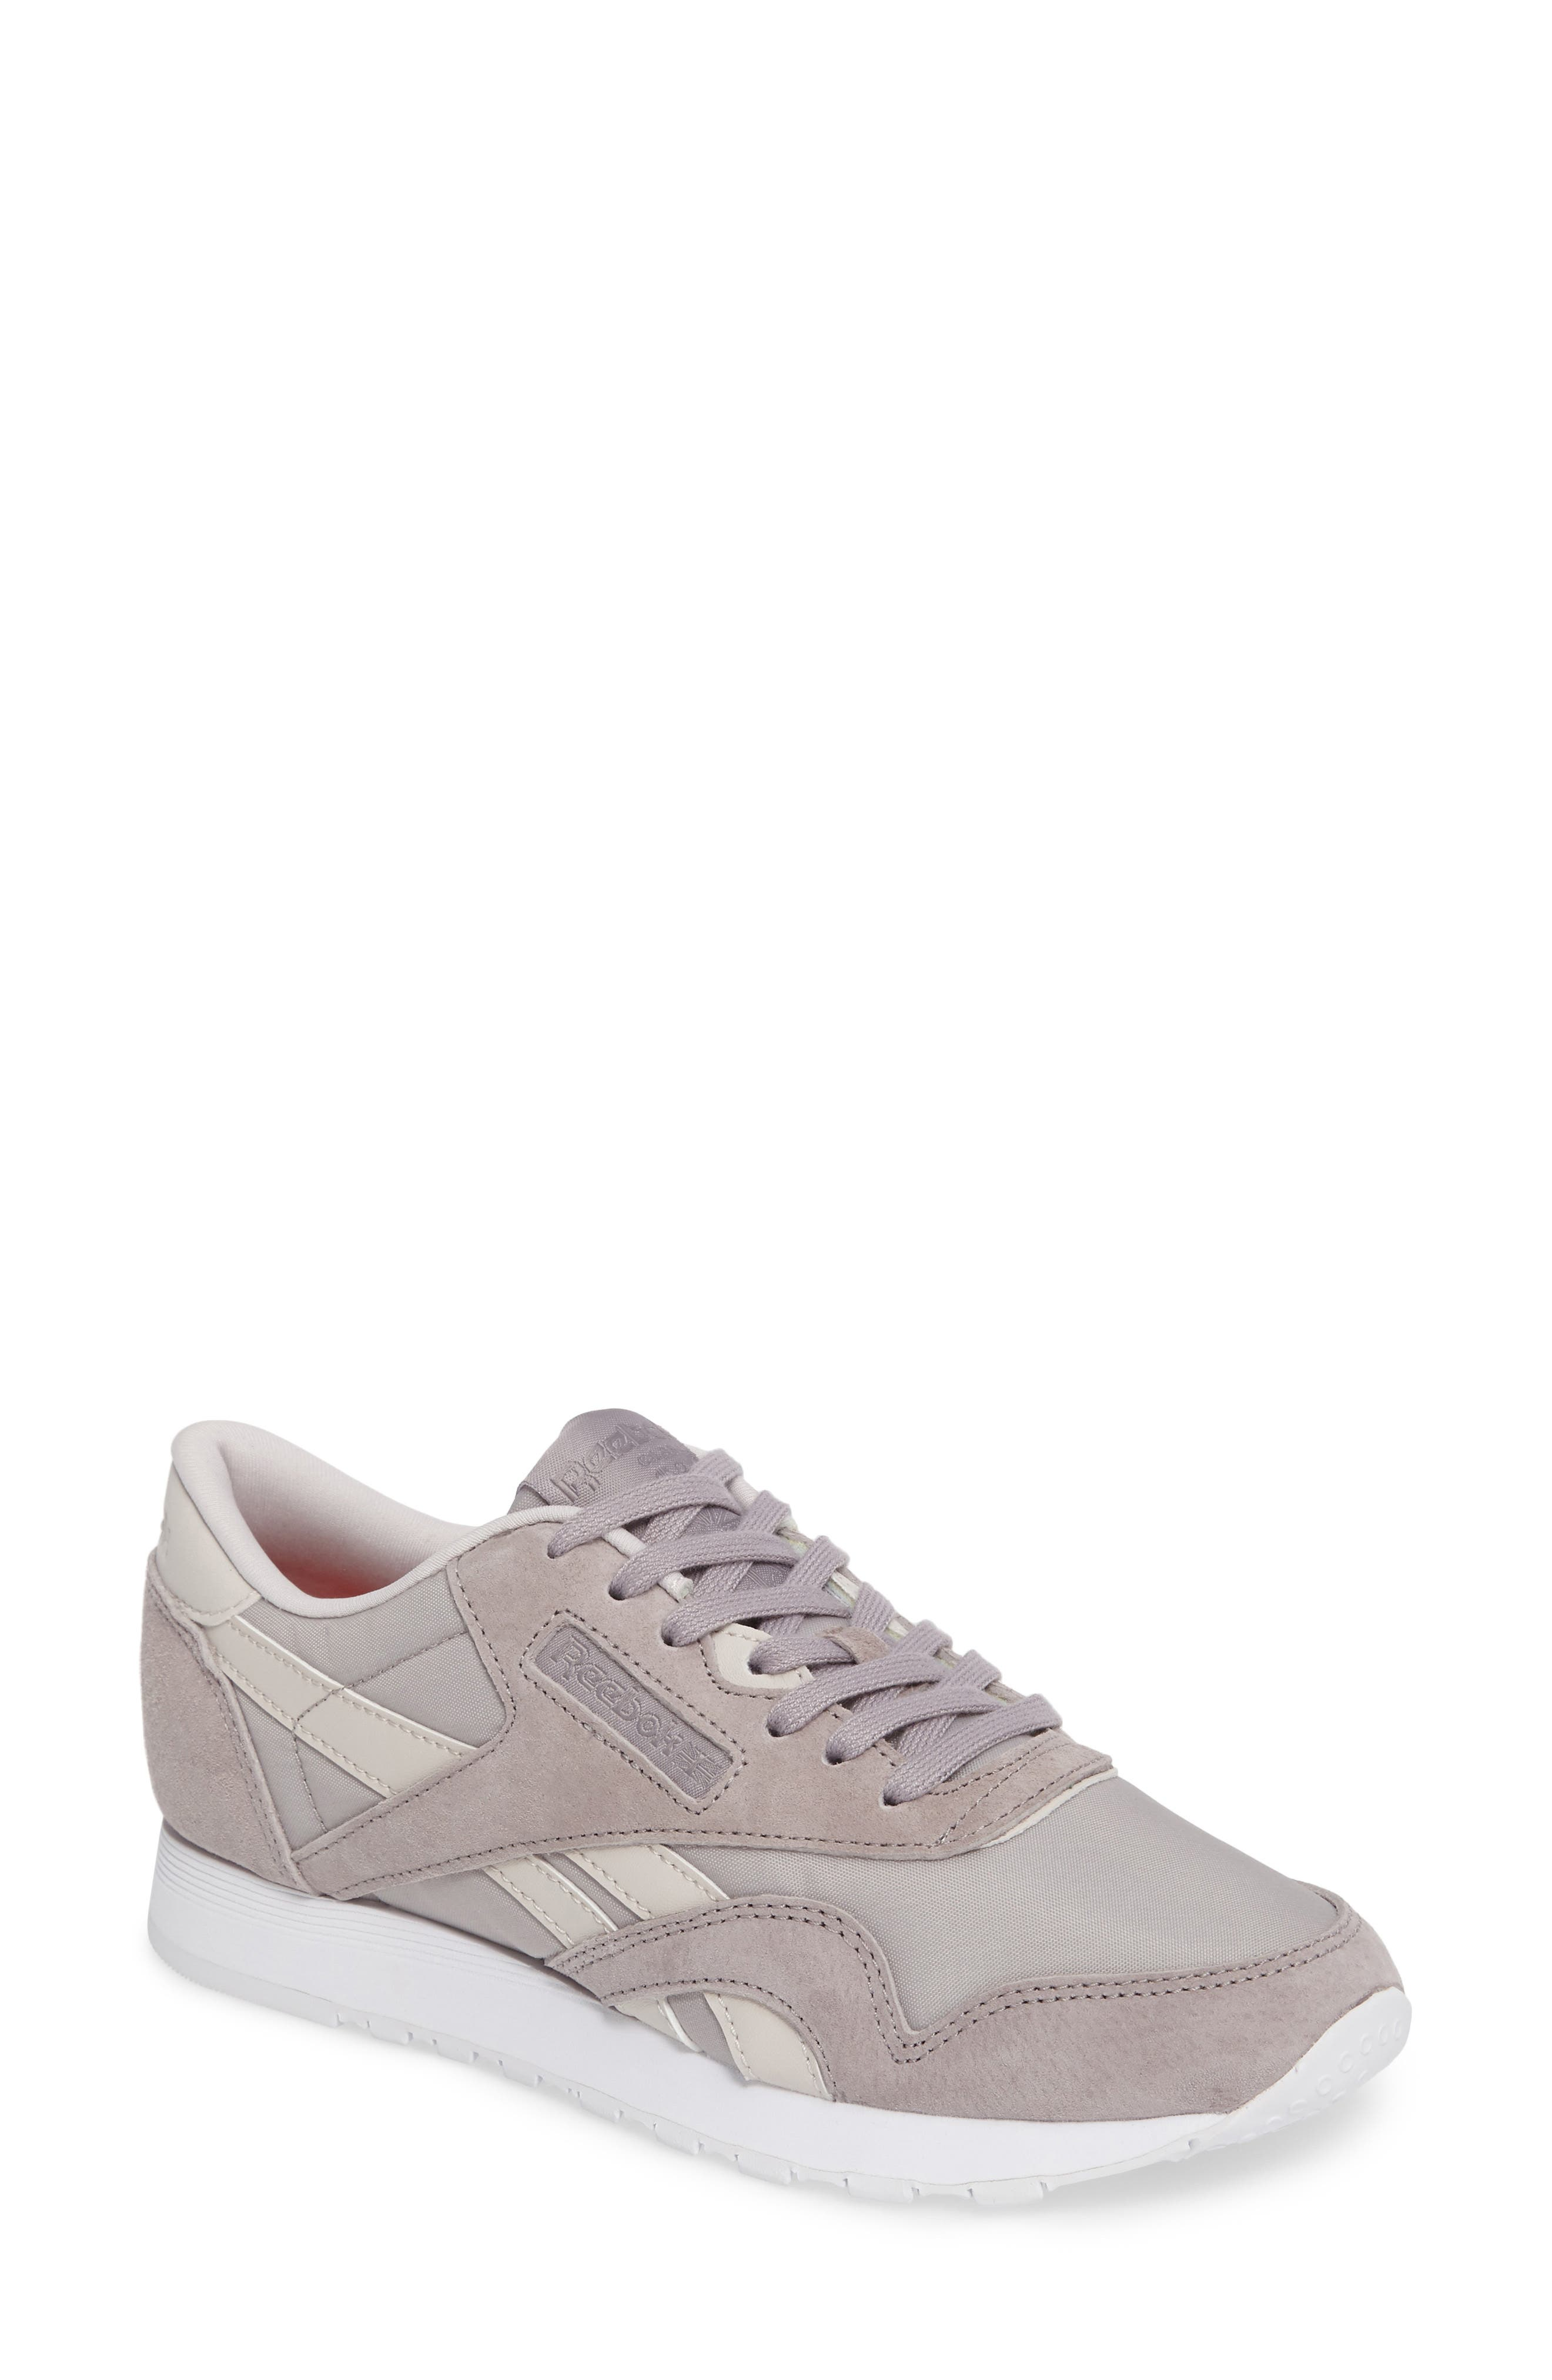 x FACE Stockholm Classic Sneaker,                         Main,                         color, 020